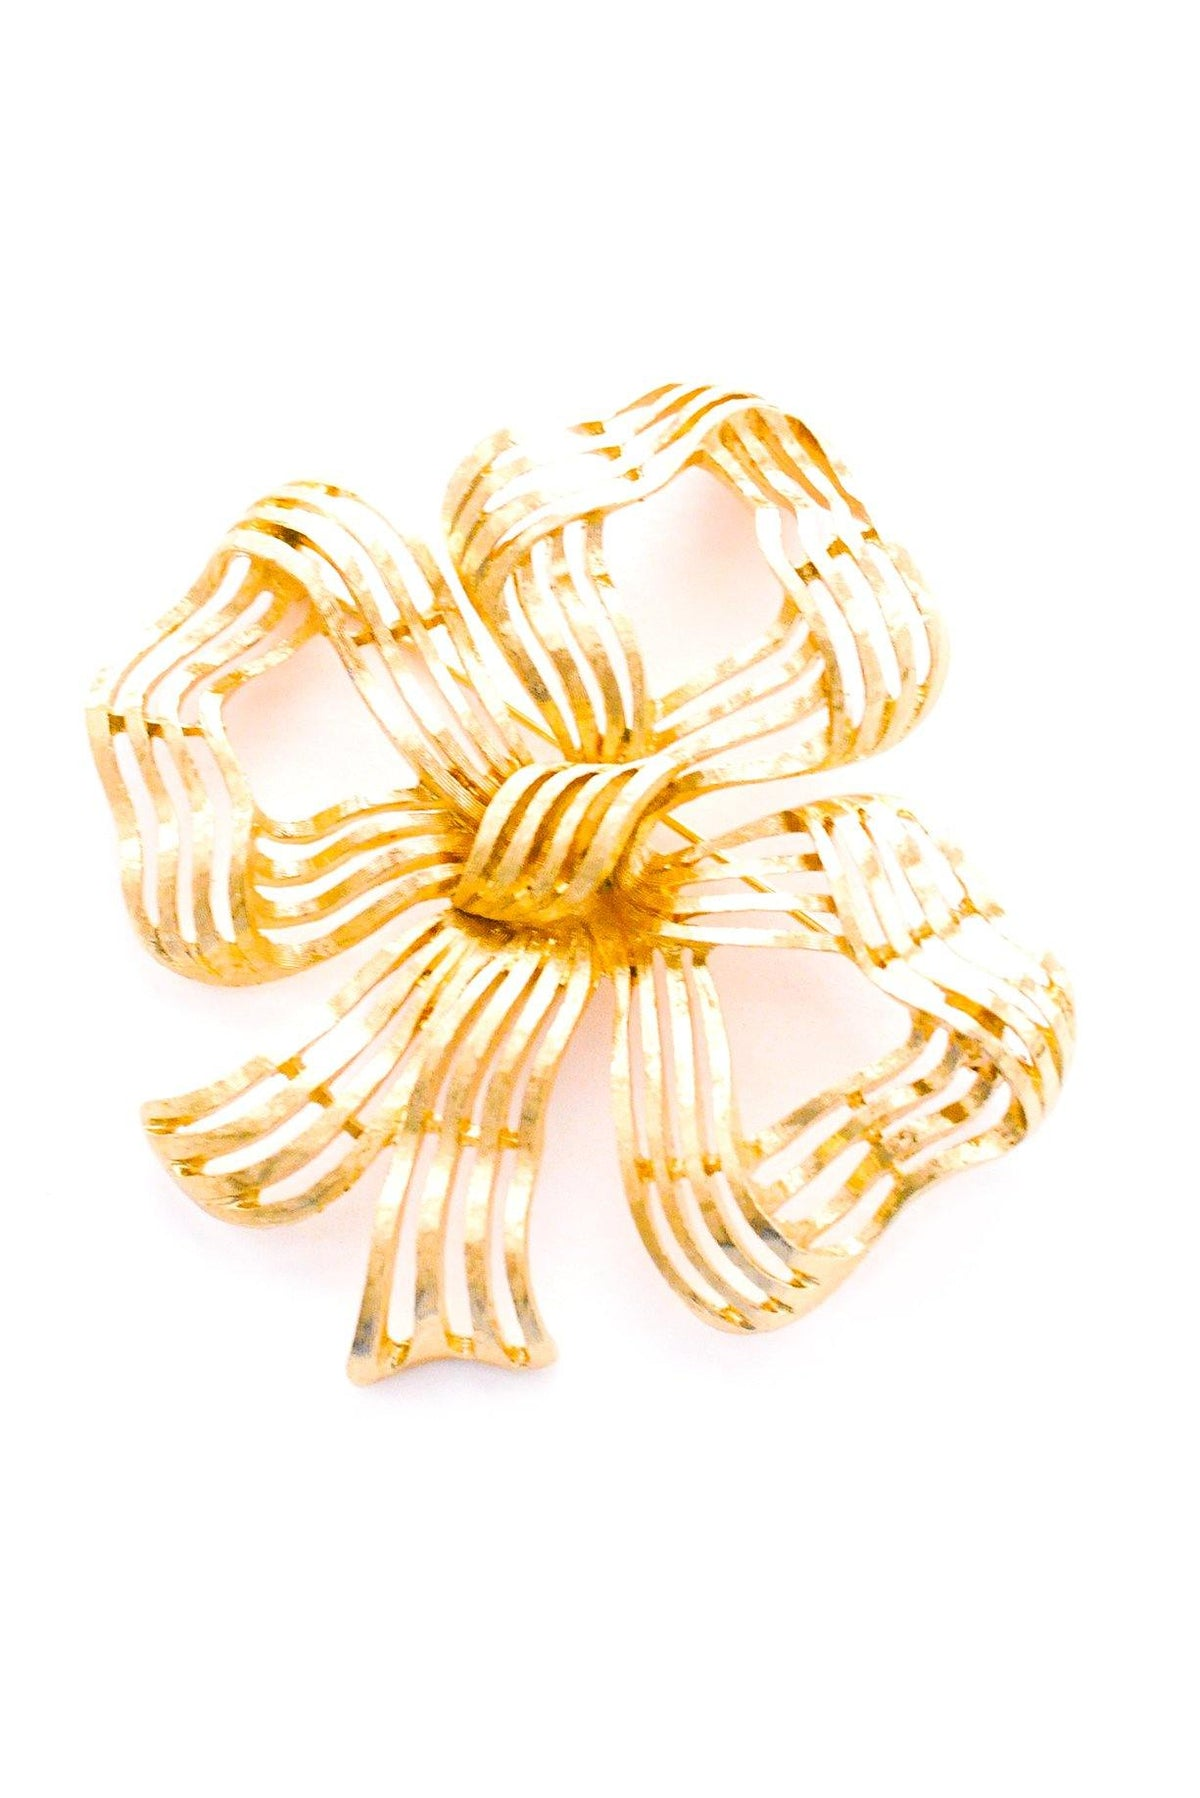 Vintage Monet statement bow brooch from Sweet & Spark.